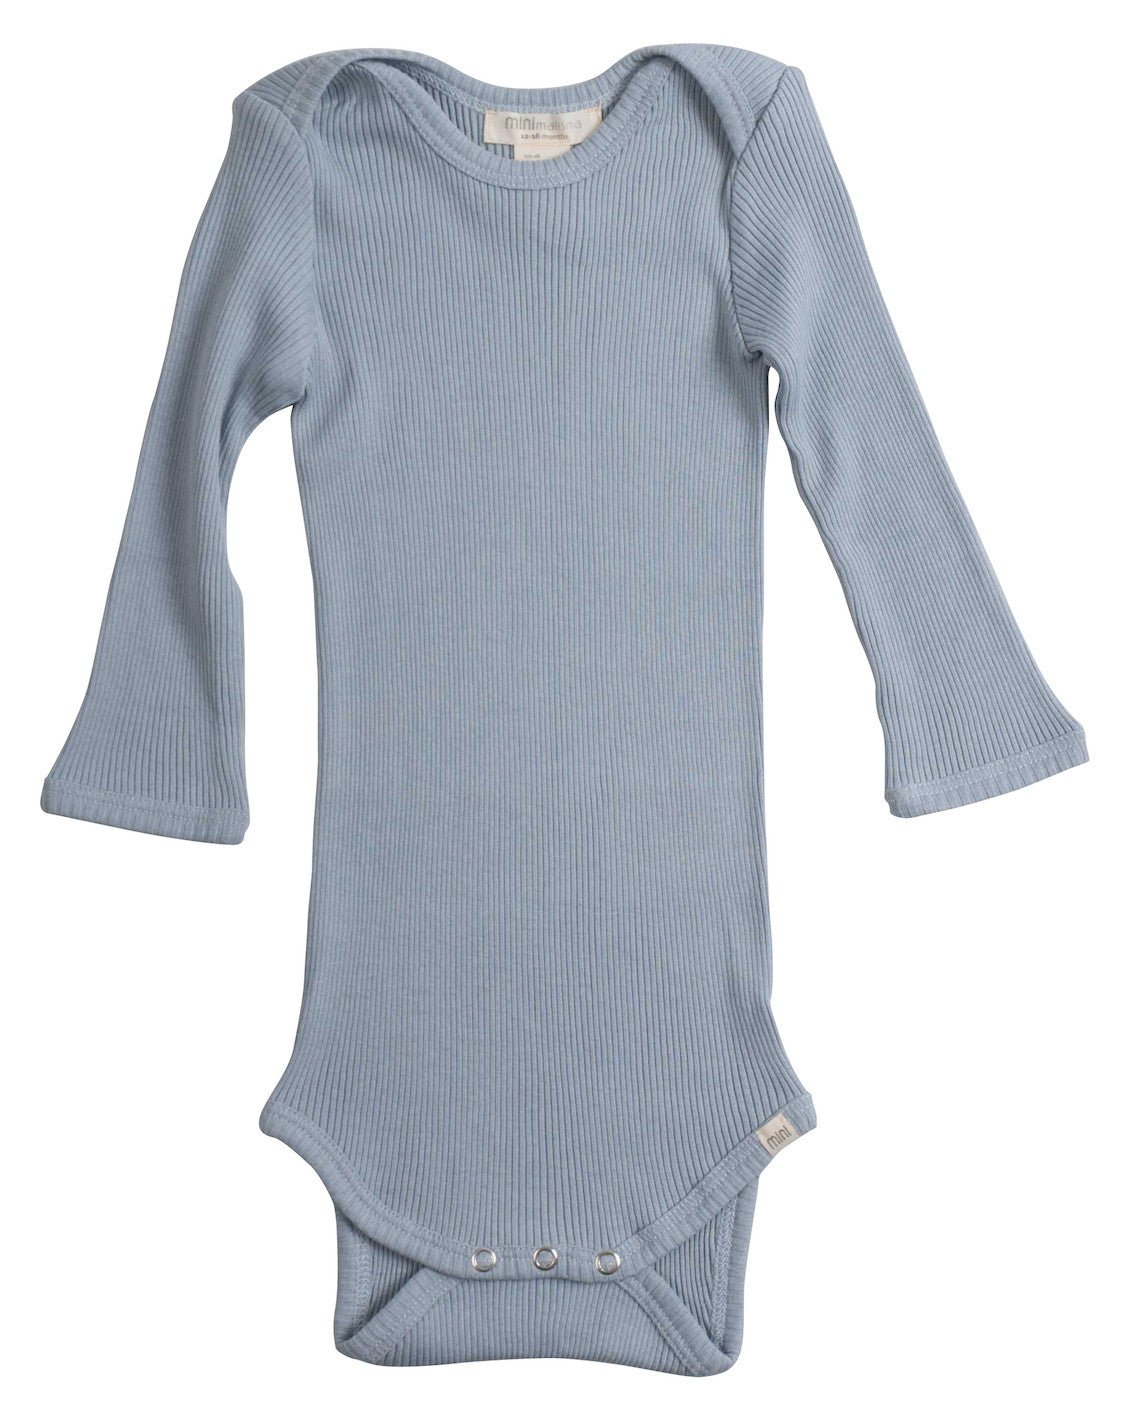 Bono ls body - fog blue